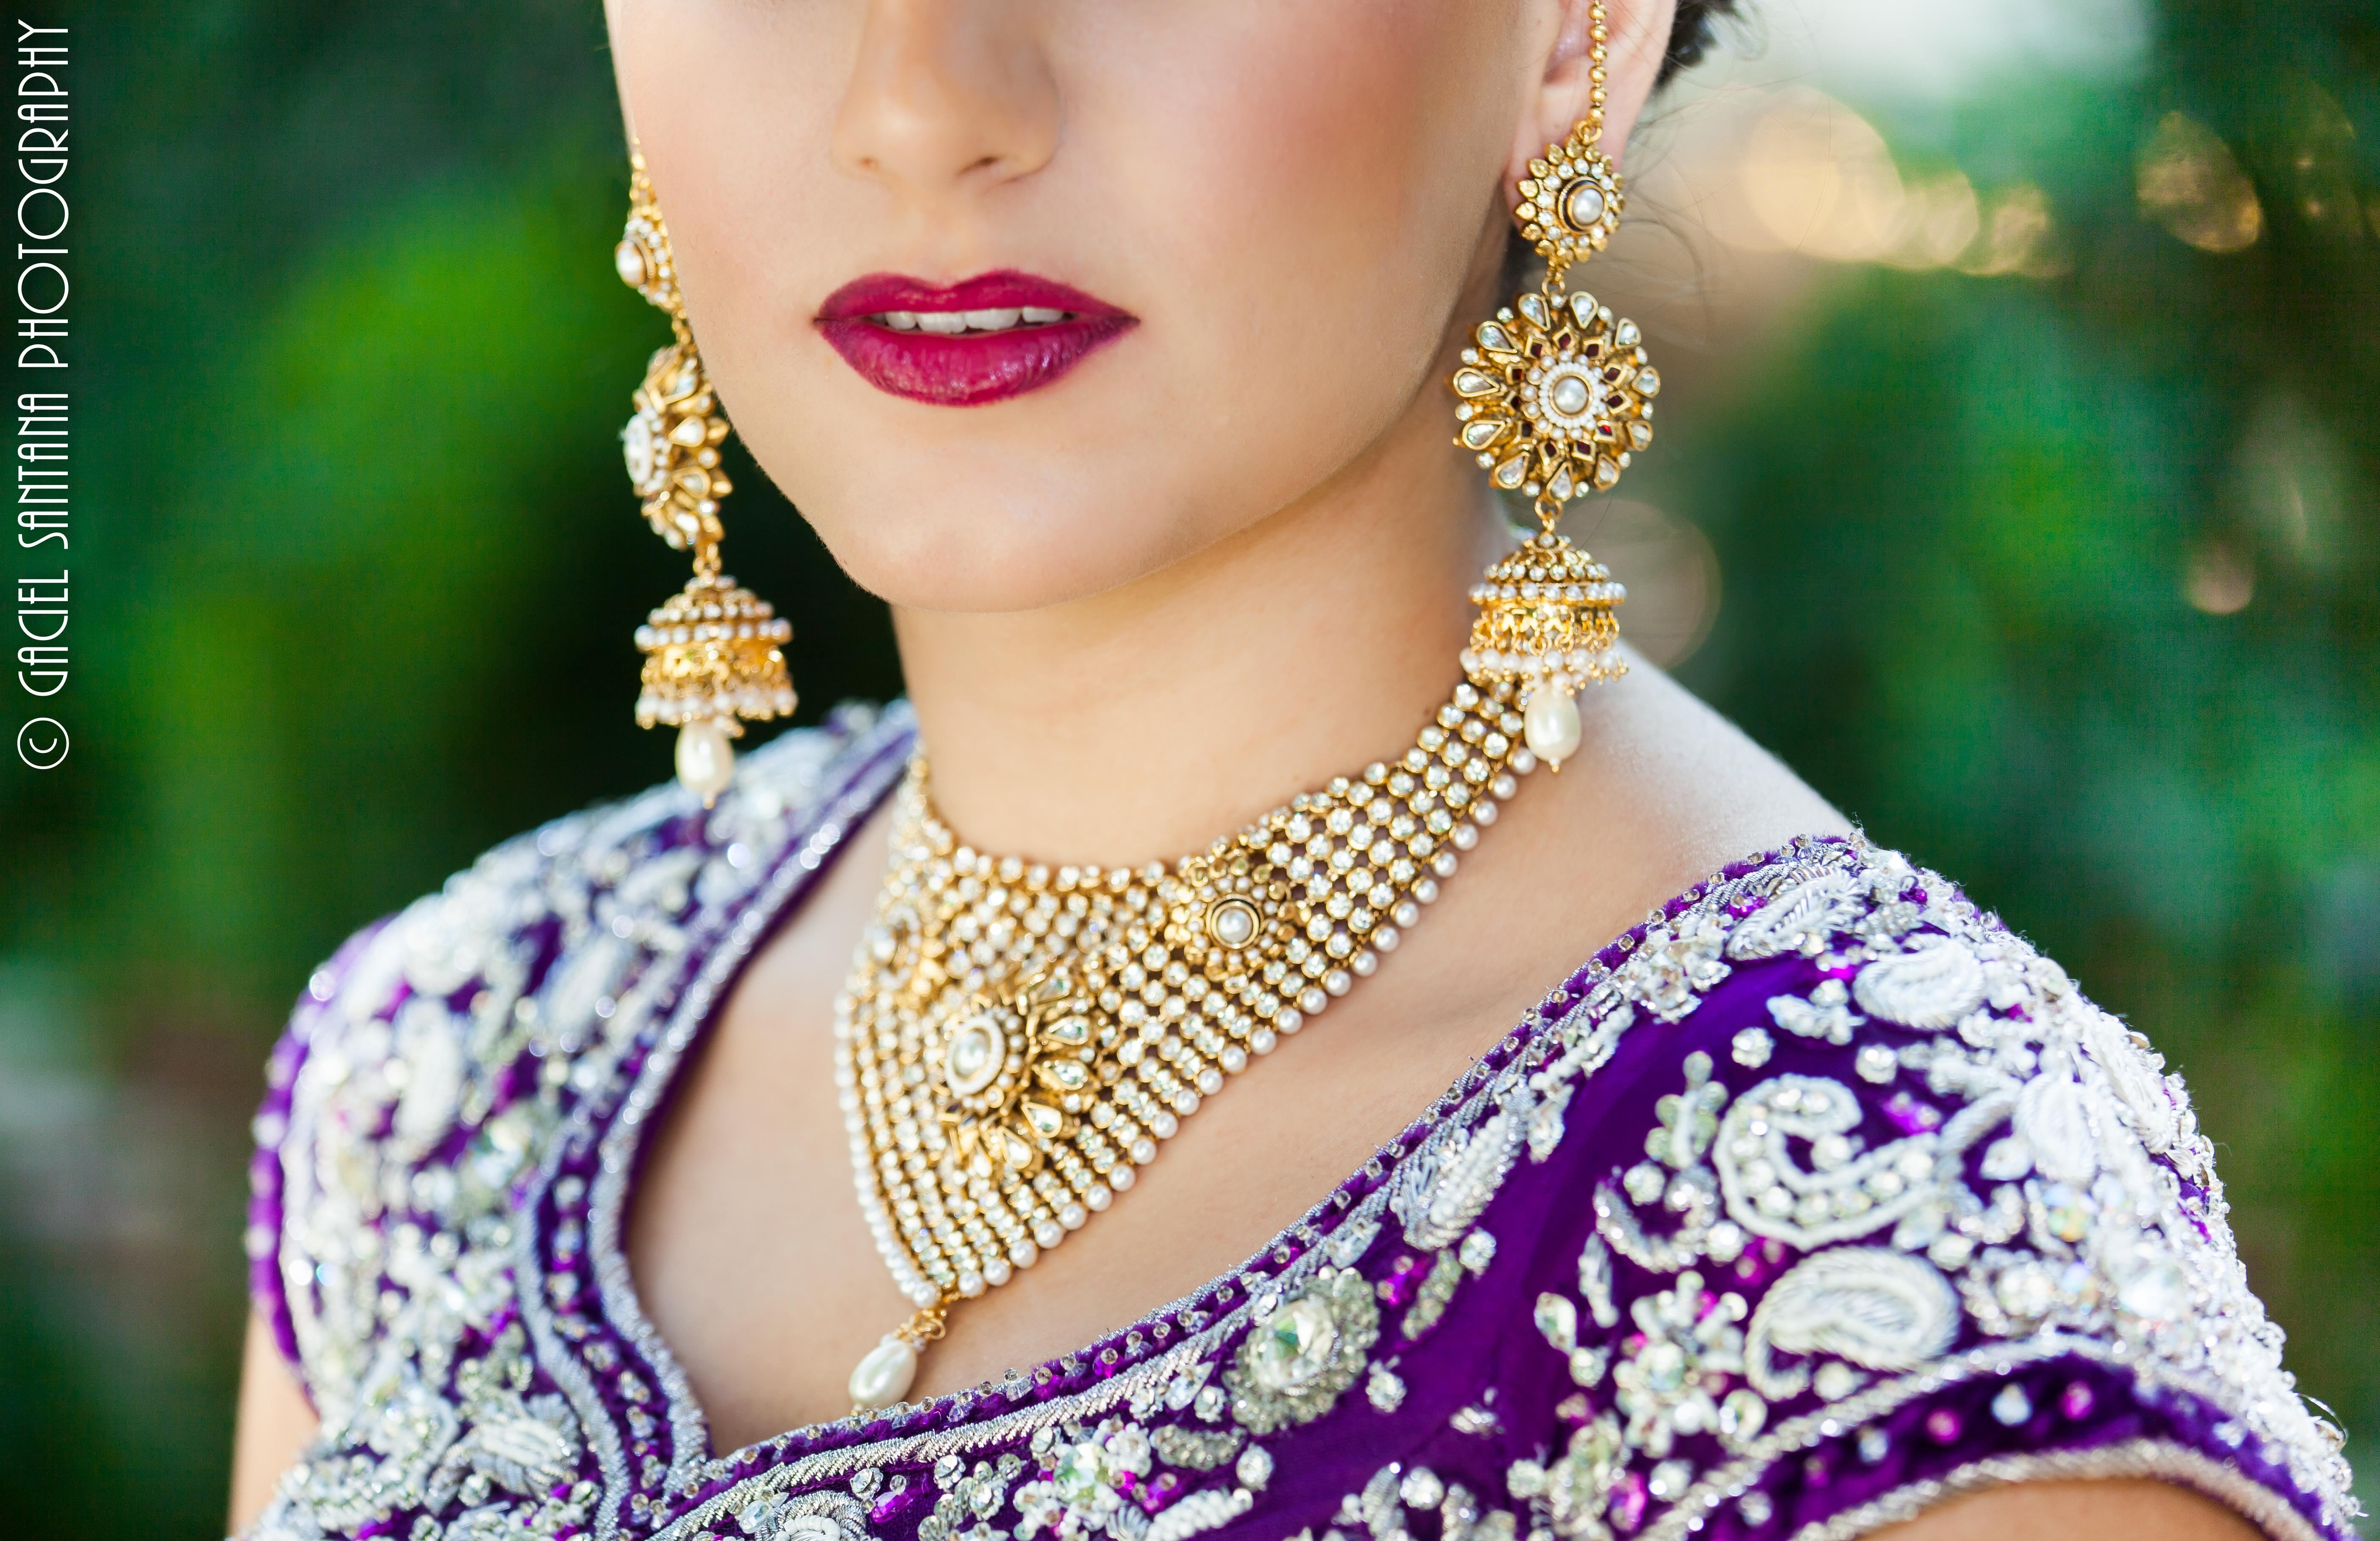 Indian Wedding Site Relaunch Celebration Sweepstakes: Belsi